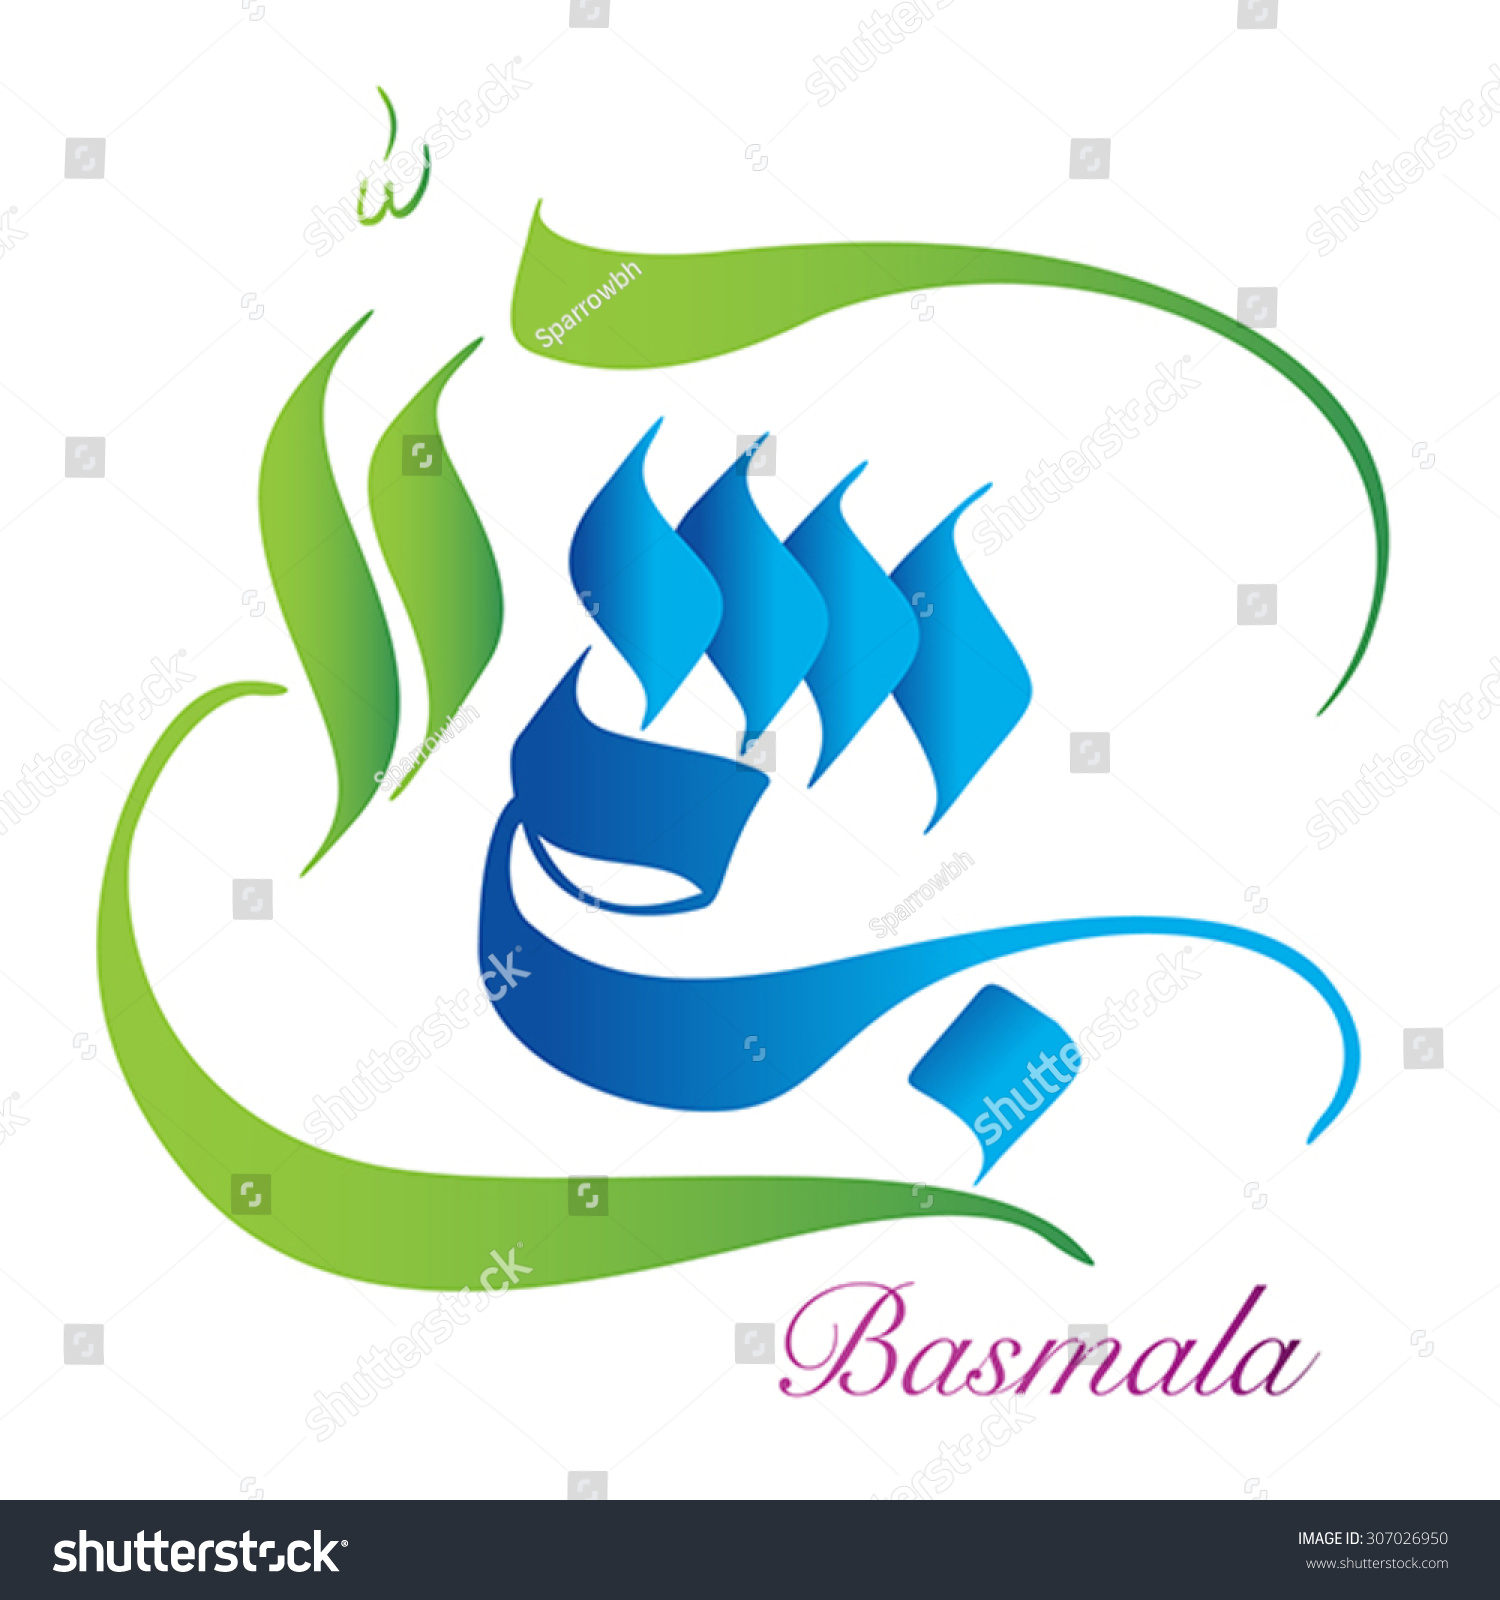 Arabic Calligraphy In the name of God the Most Gracious the Most Merciful vector